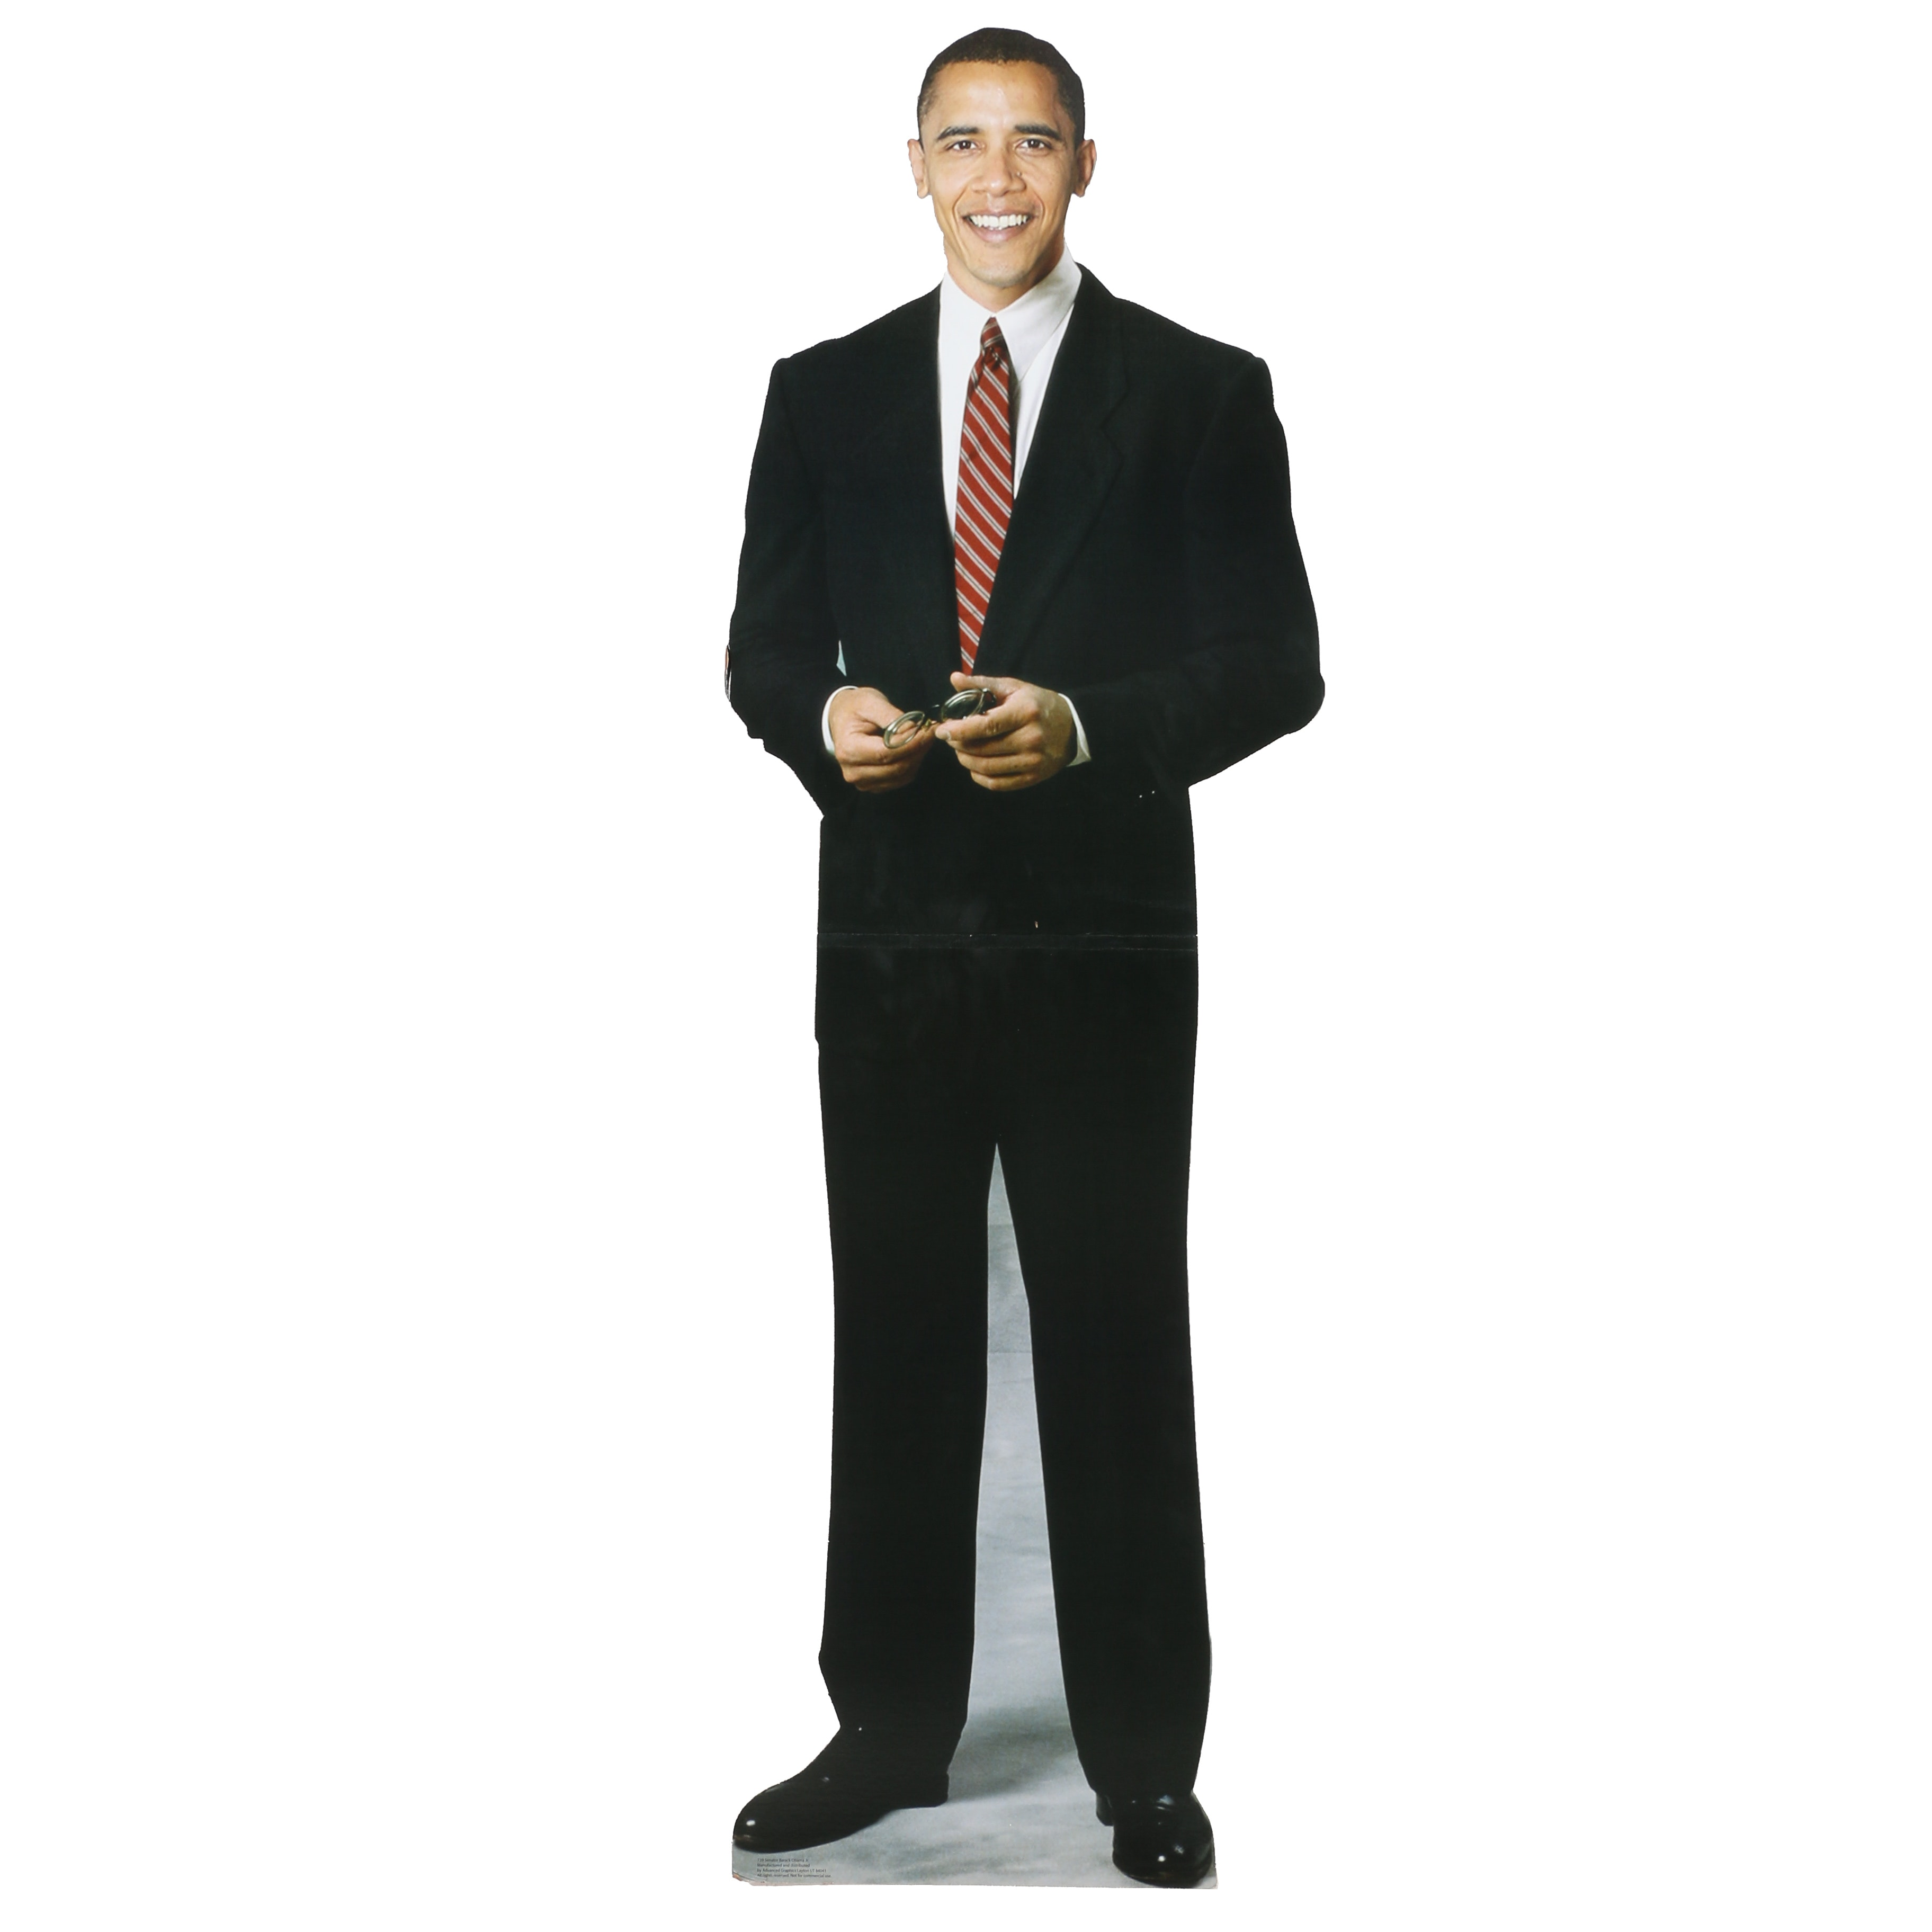 Life-Size Cardboard Cutout of Barack Obama